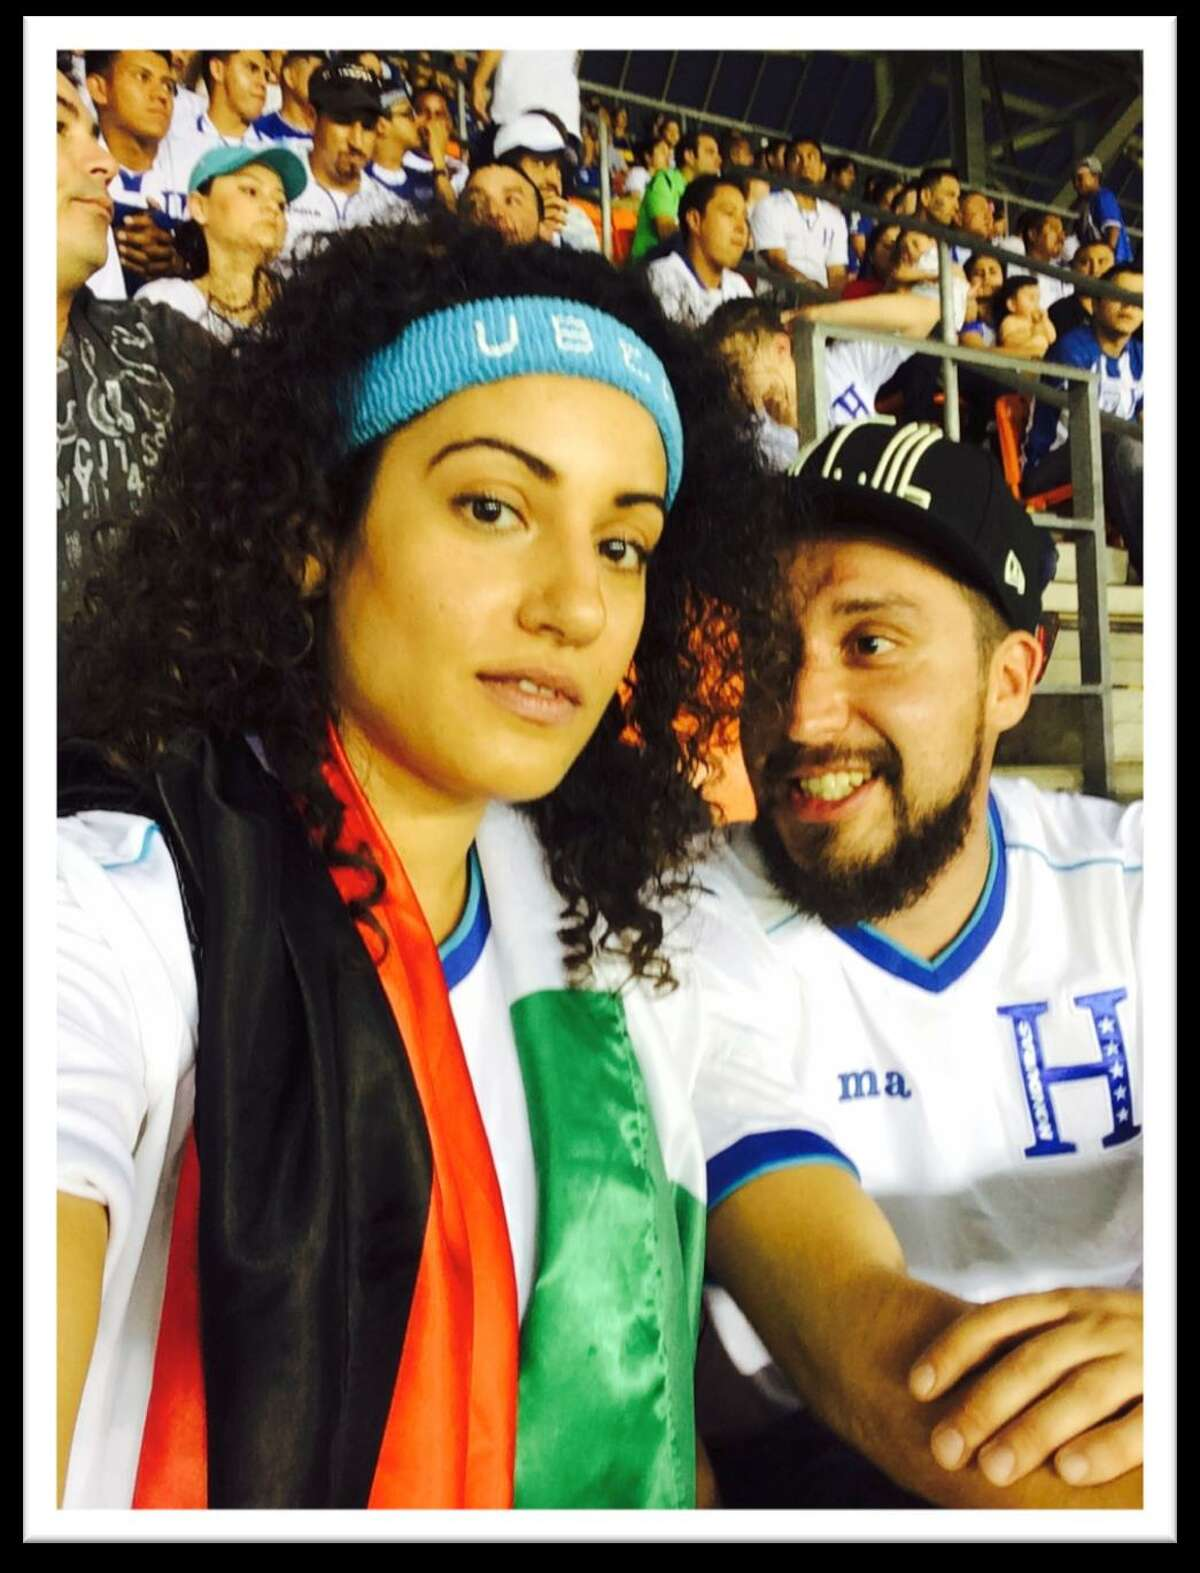 Caption: Palestinian-American Buthayna Hammad, 30, was attending the Honduras vs. Israel game in June at BBVA Compass Stadium with her boyfriend and his family when security officials and police officers allegedly forbid her from waving the Palestinian flag. Credit: Buthayna Hammad